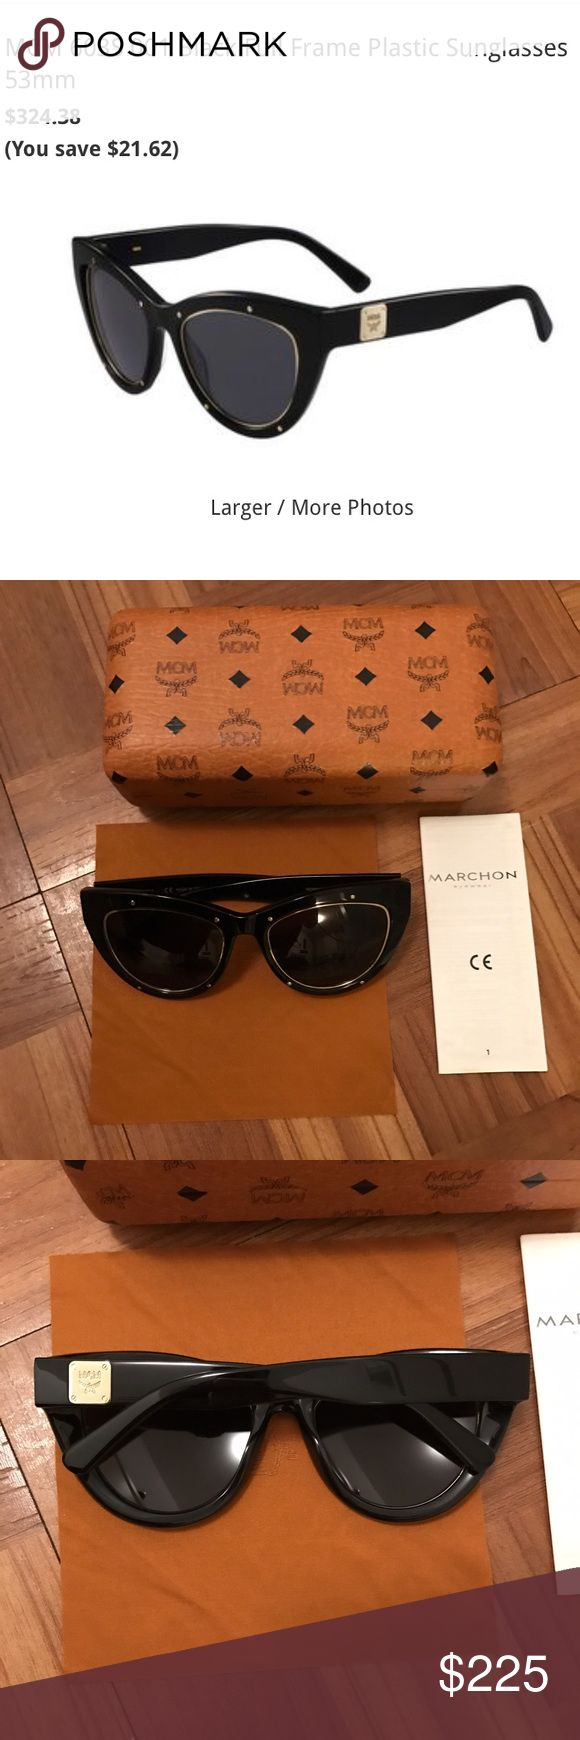 MCM brand new box cat eye black gold sunglasses Brand new in the box / case with dust cloth and manufacturer card. Brand : MCM Model : 603S Color : 001 Black Size  : 53mm-18mm-140mm Gender: Women Made in Italy Packaging Includes: MCM sunglasses case, MCM cleaning cloth, manufacturer booklet MCM Accessories Sunglasses